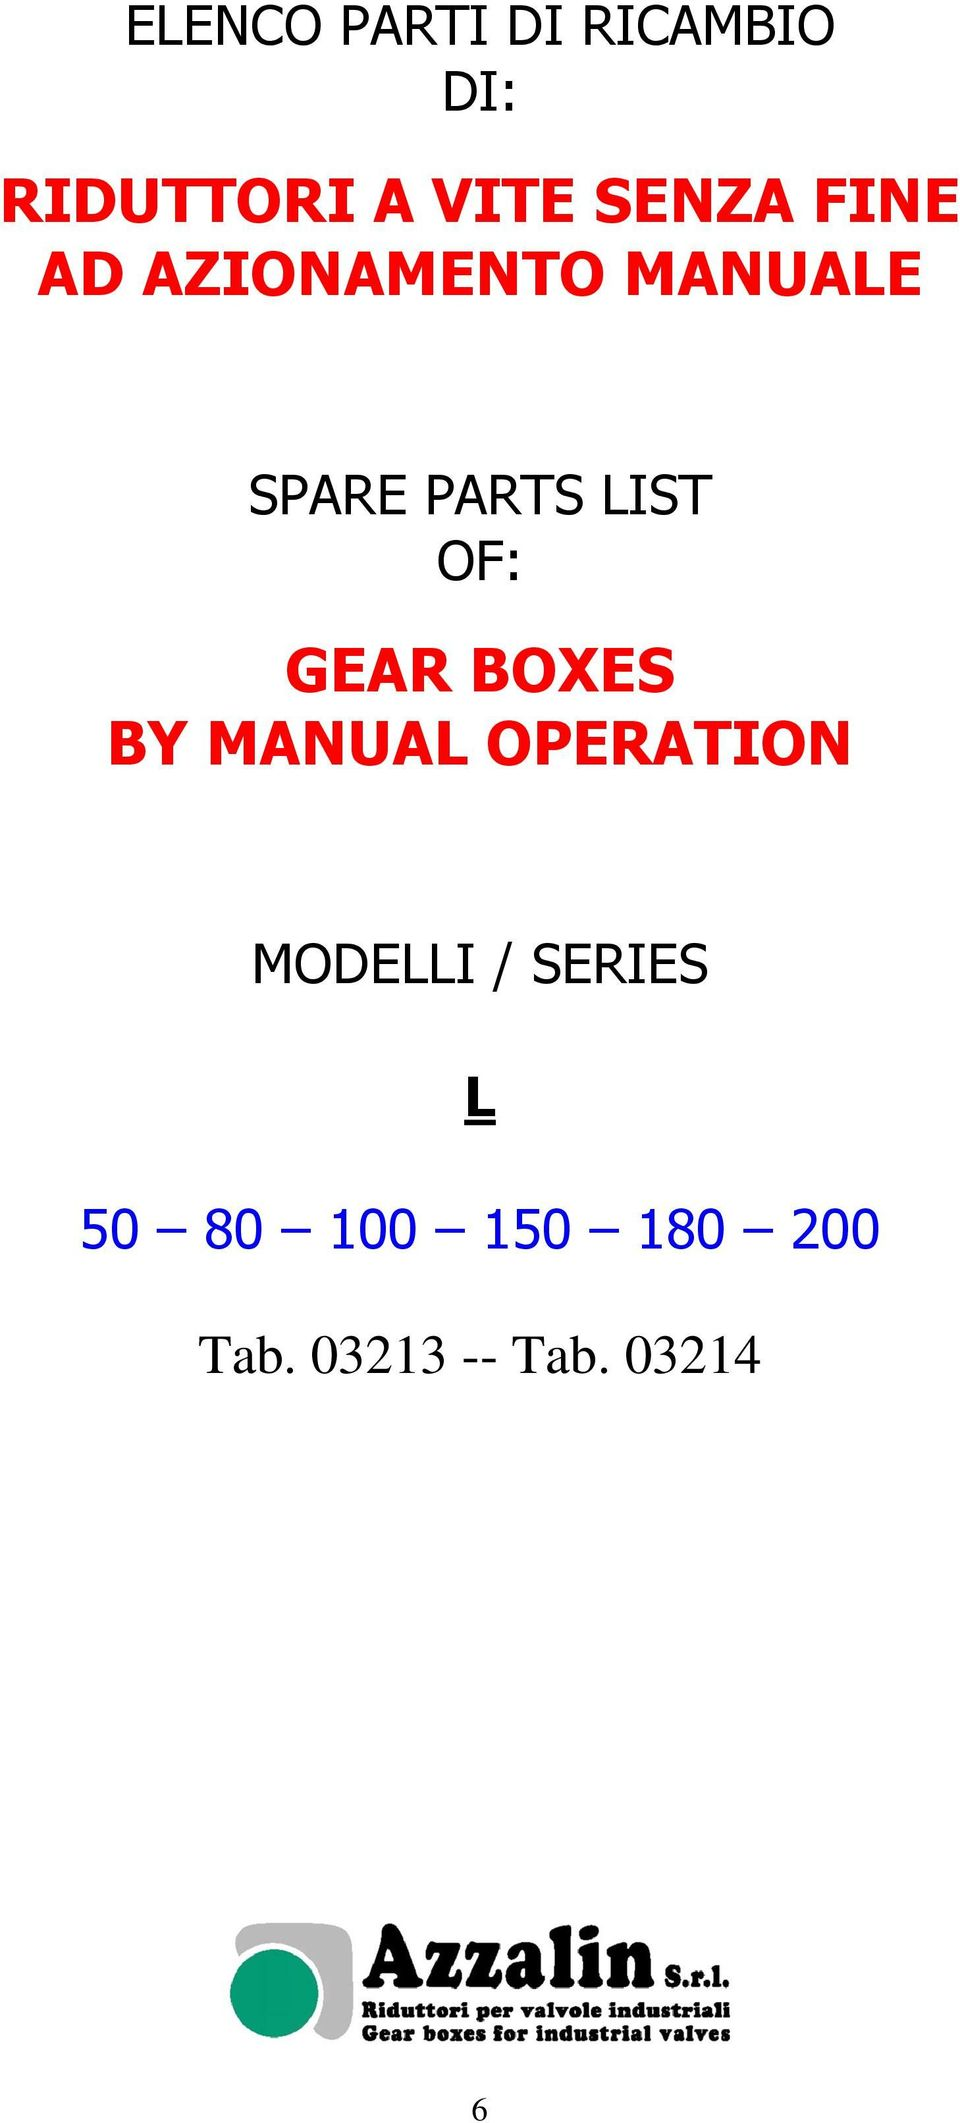 LIST OF: GEAR BOXES BY MANUAL OPERATION MODELLI /